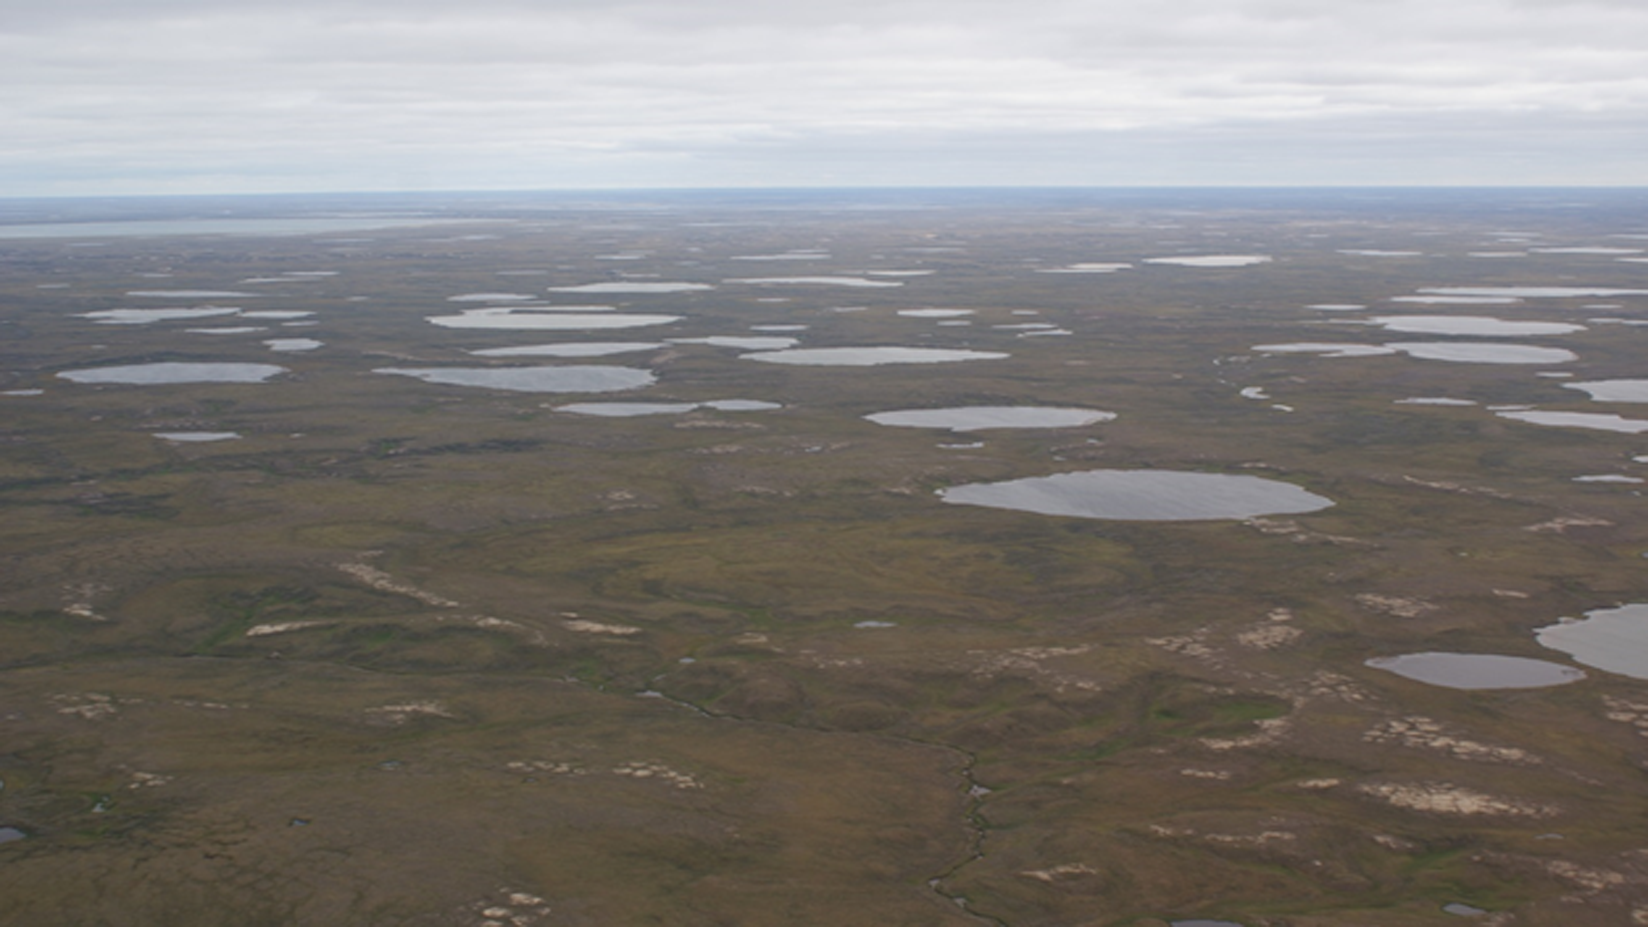 Figure 2: Lakes on central Yamal, Western Siberia, Russia (Photo: A. Bartsch 2016)